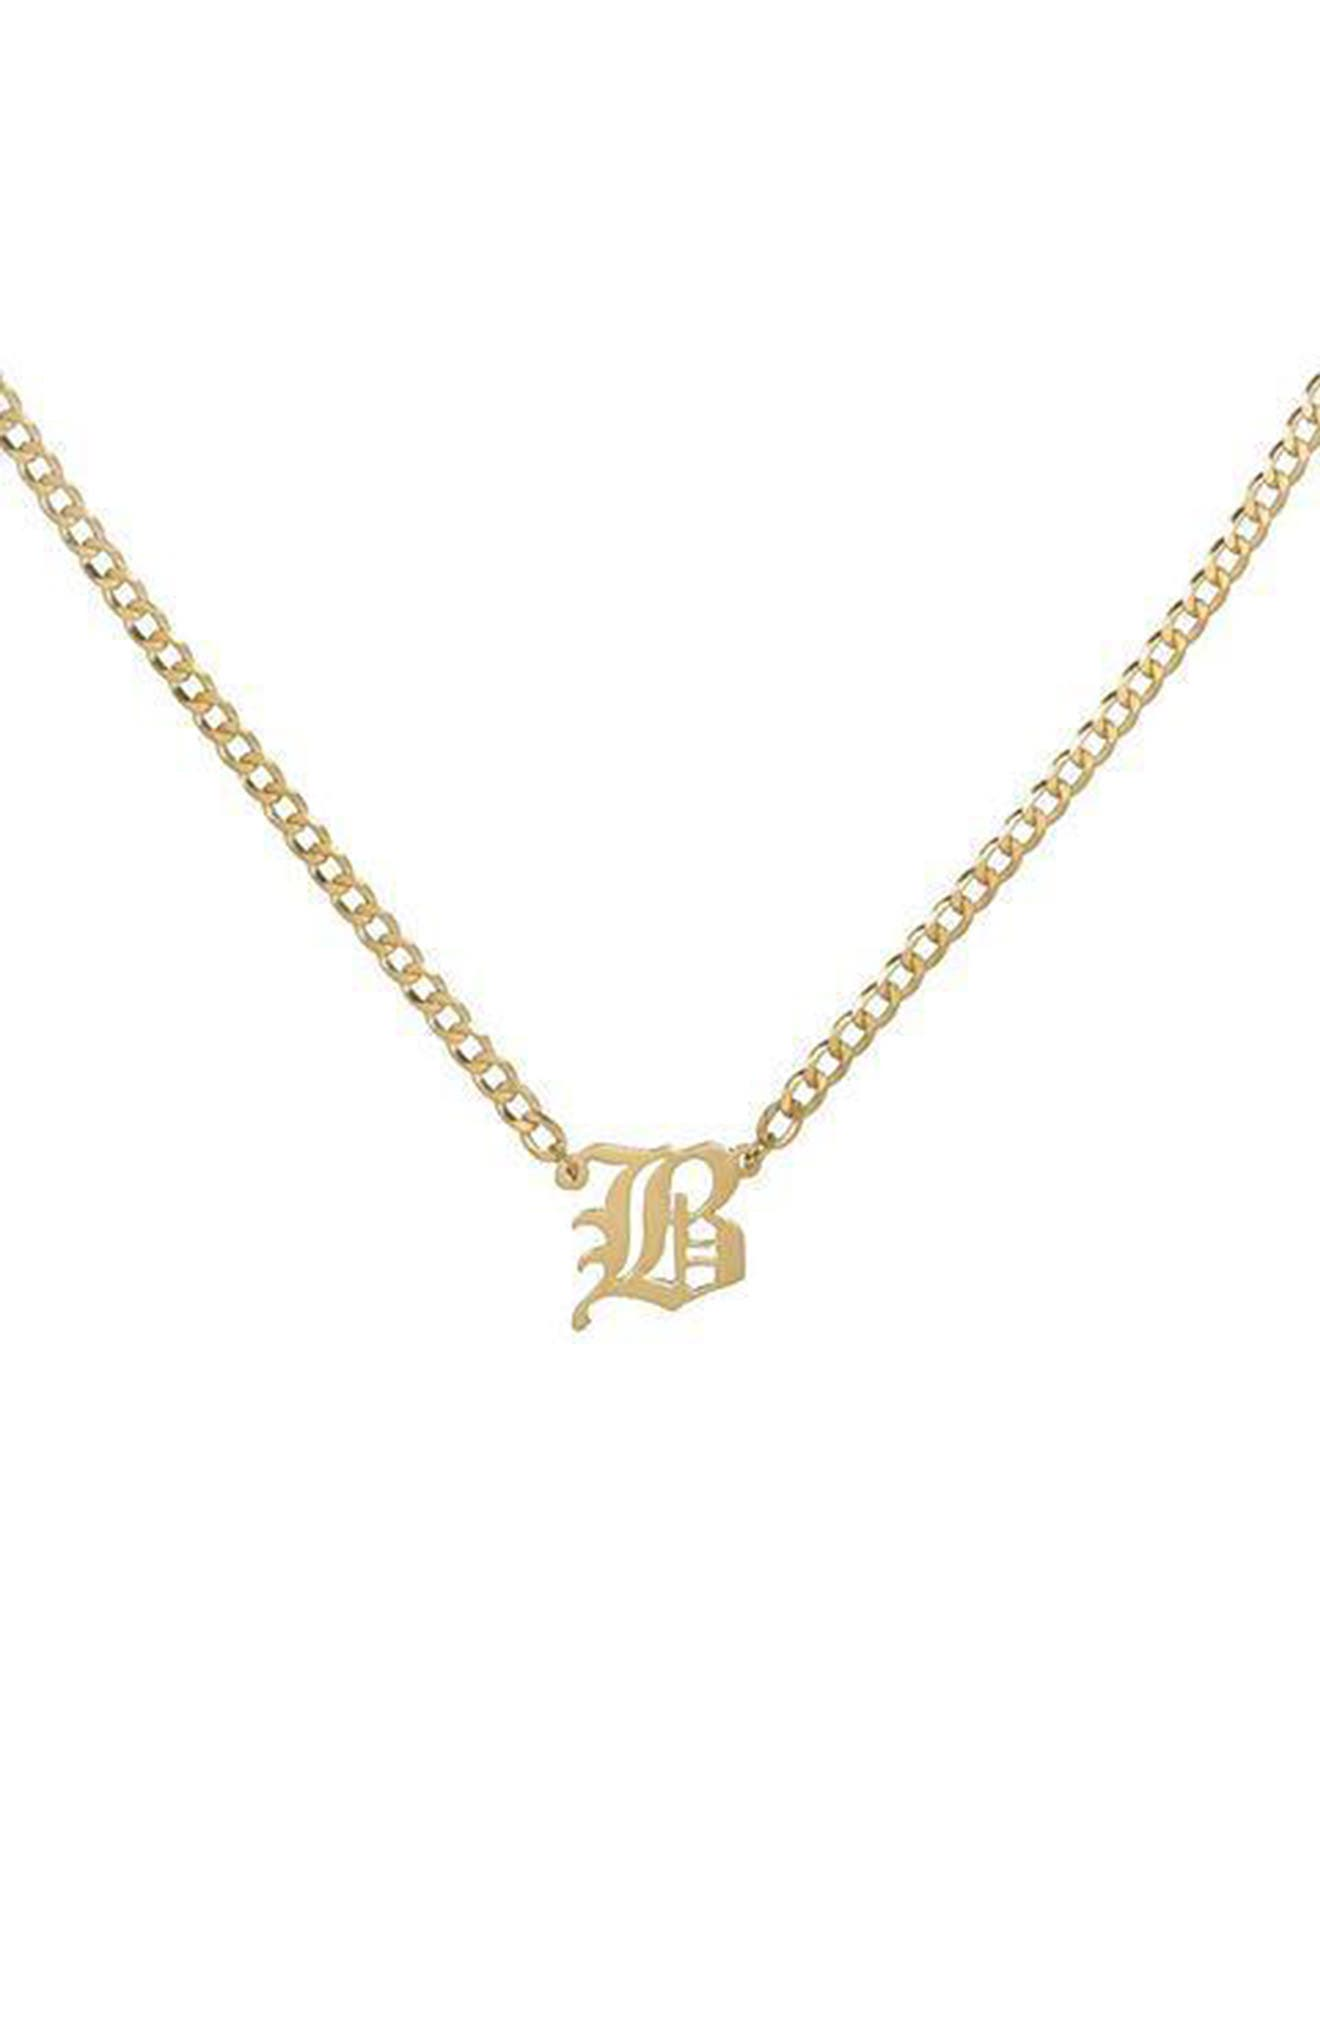 Women's Adina's Jewels Personalized Old English Initial Cuban Chain Necklace